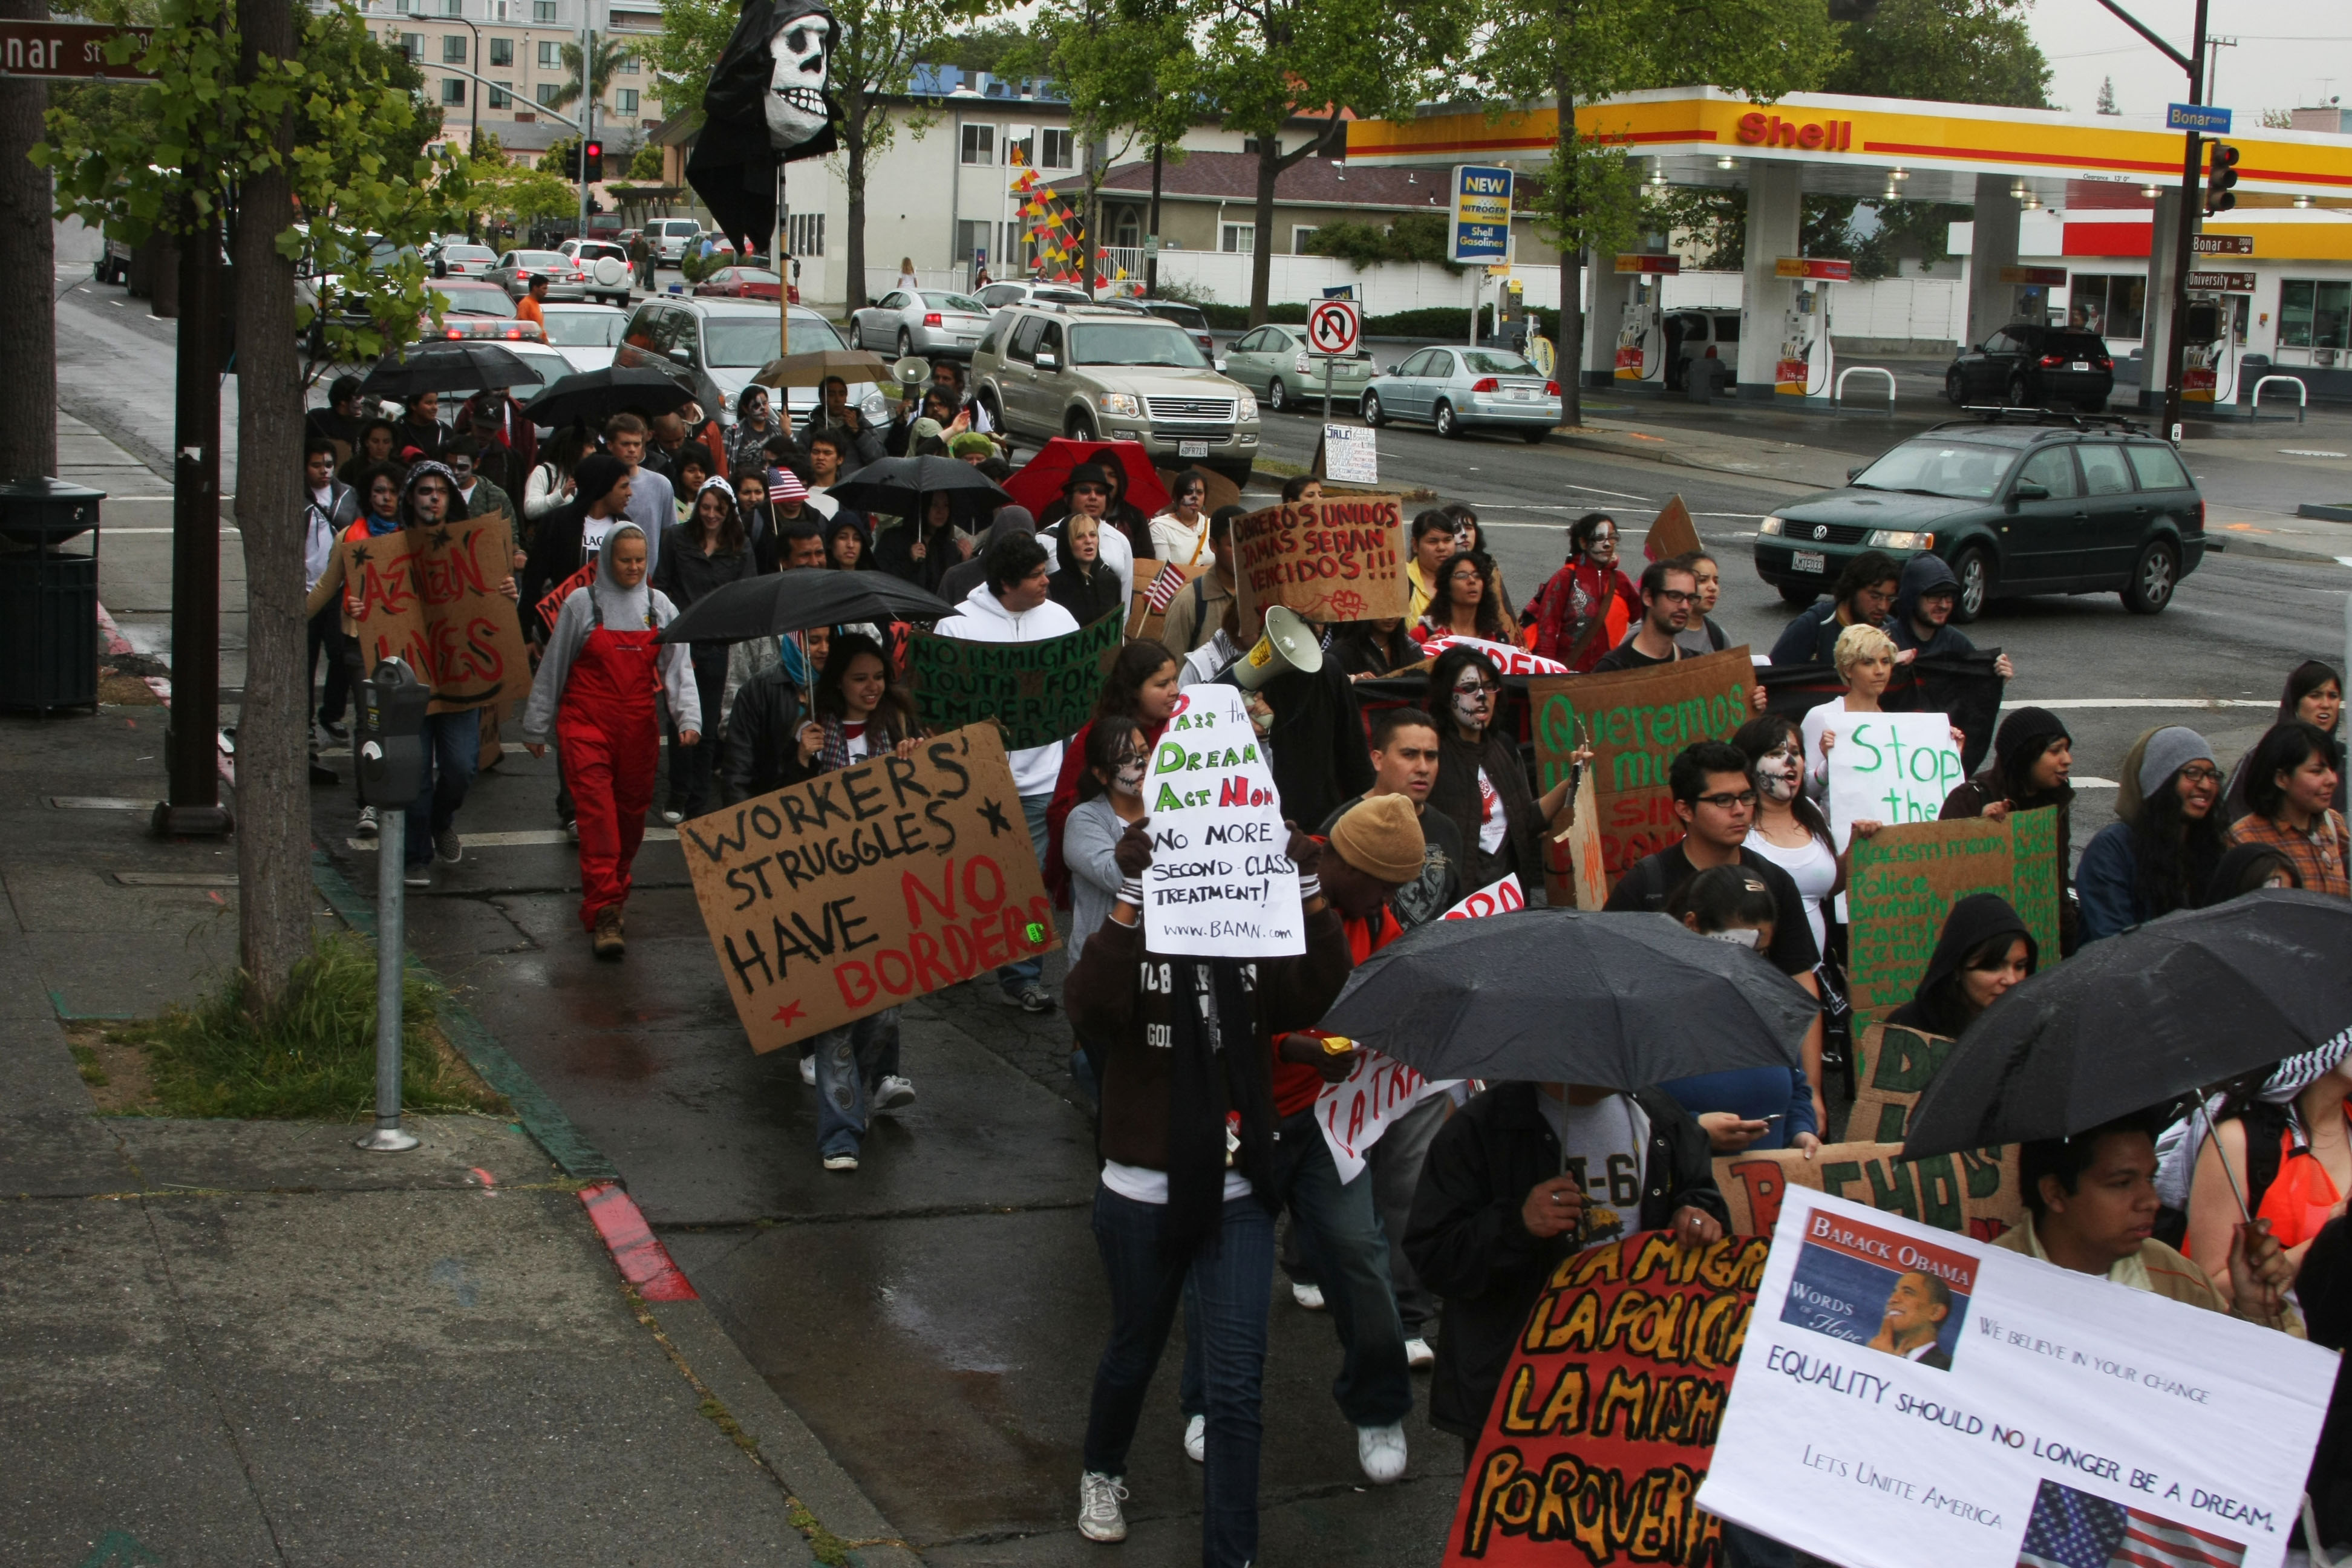 Demonstrators protest during a march for immigrant rights down streets in the Berkeley area on May 1, 2009.